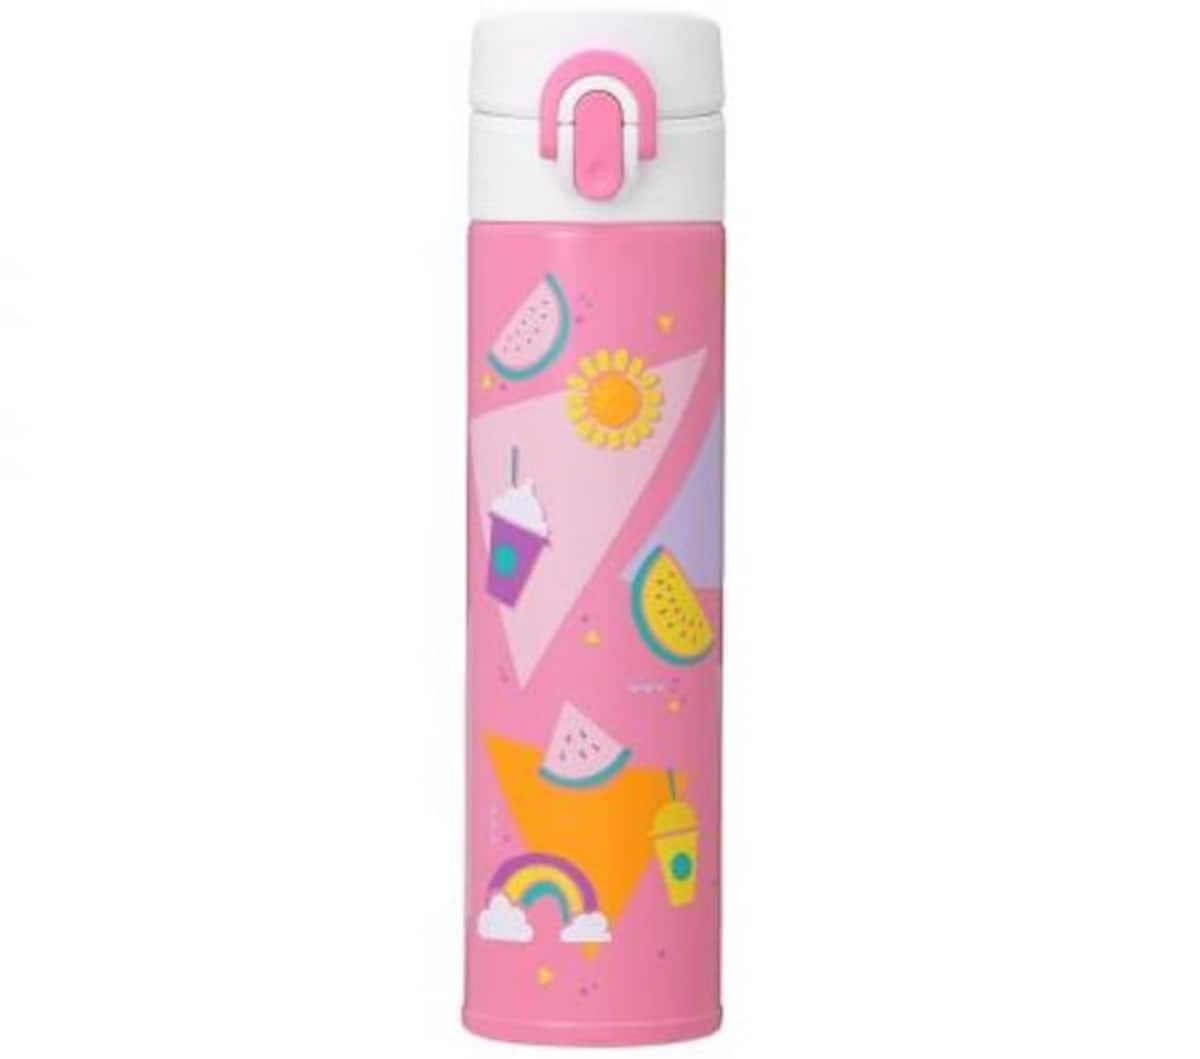 Slim Handy Stainless Steel Bottle in Summer Icons (¥4,000/US$37)